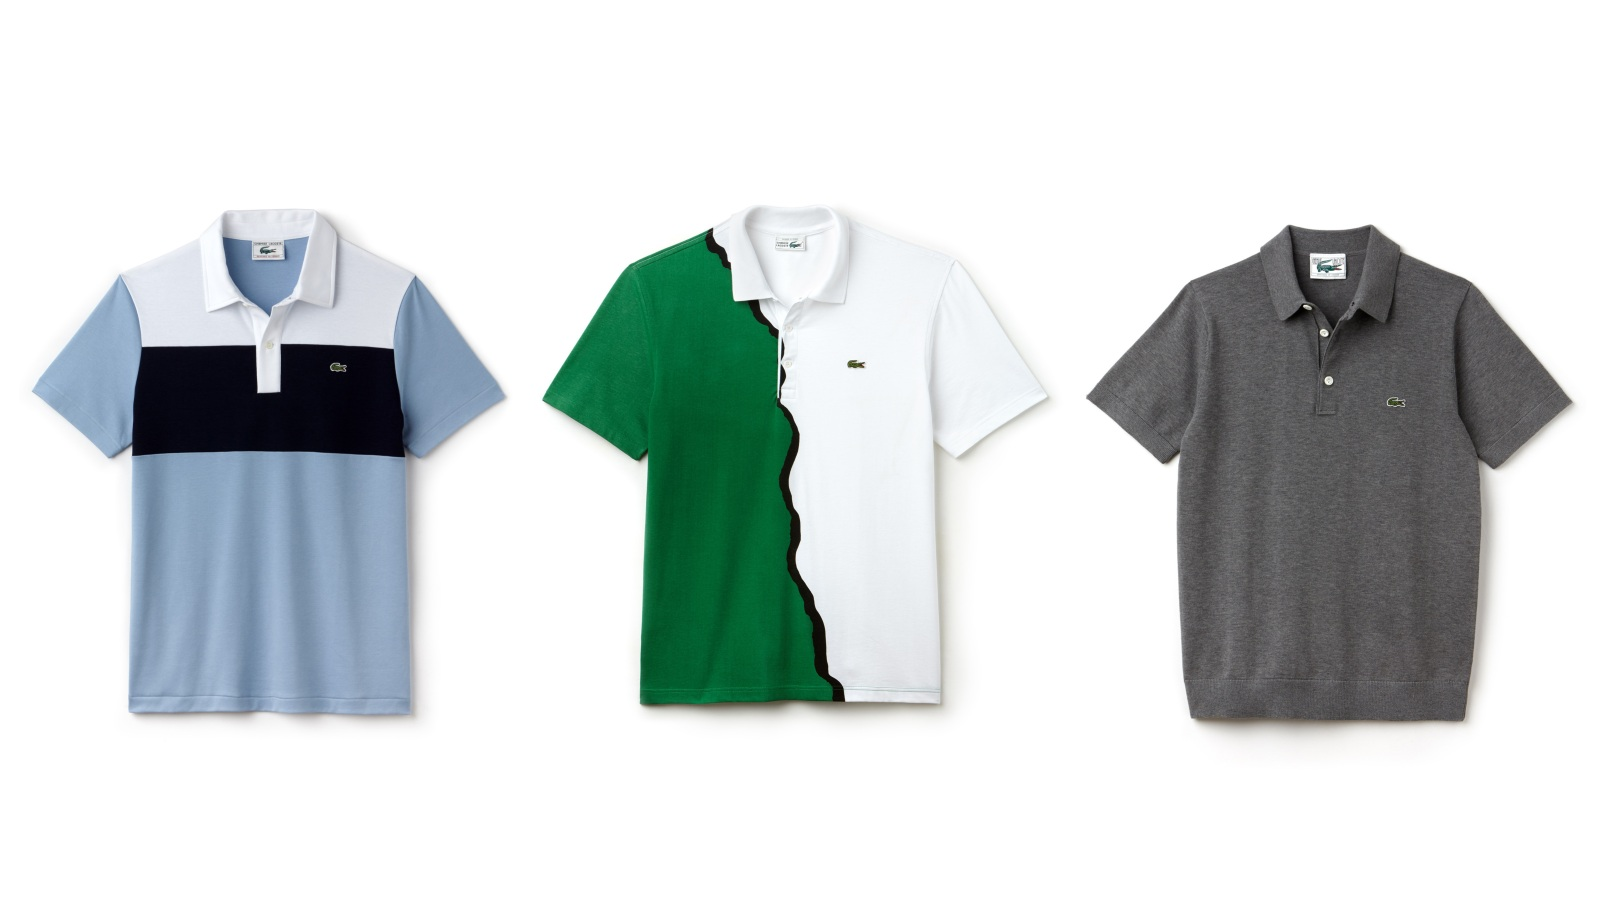 97e0490cca77 Lacoste s 85th Anniversary Collection Offers a Taste of the French Open